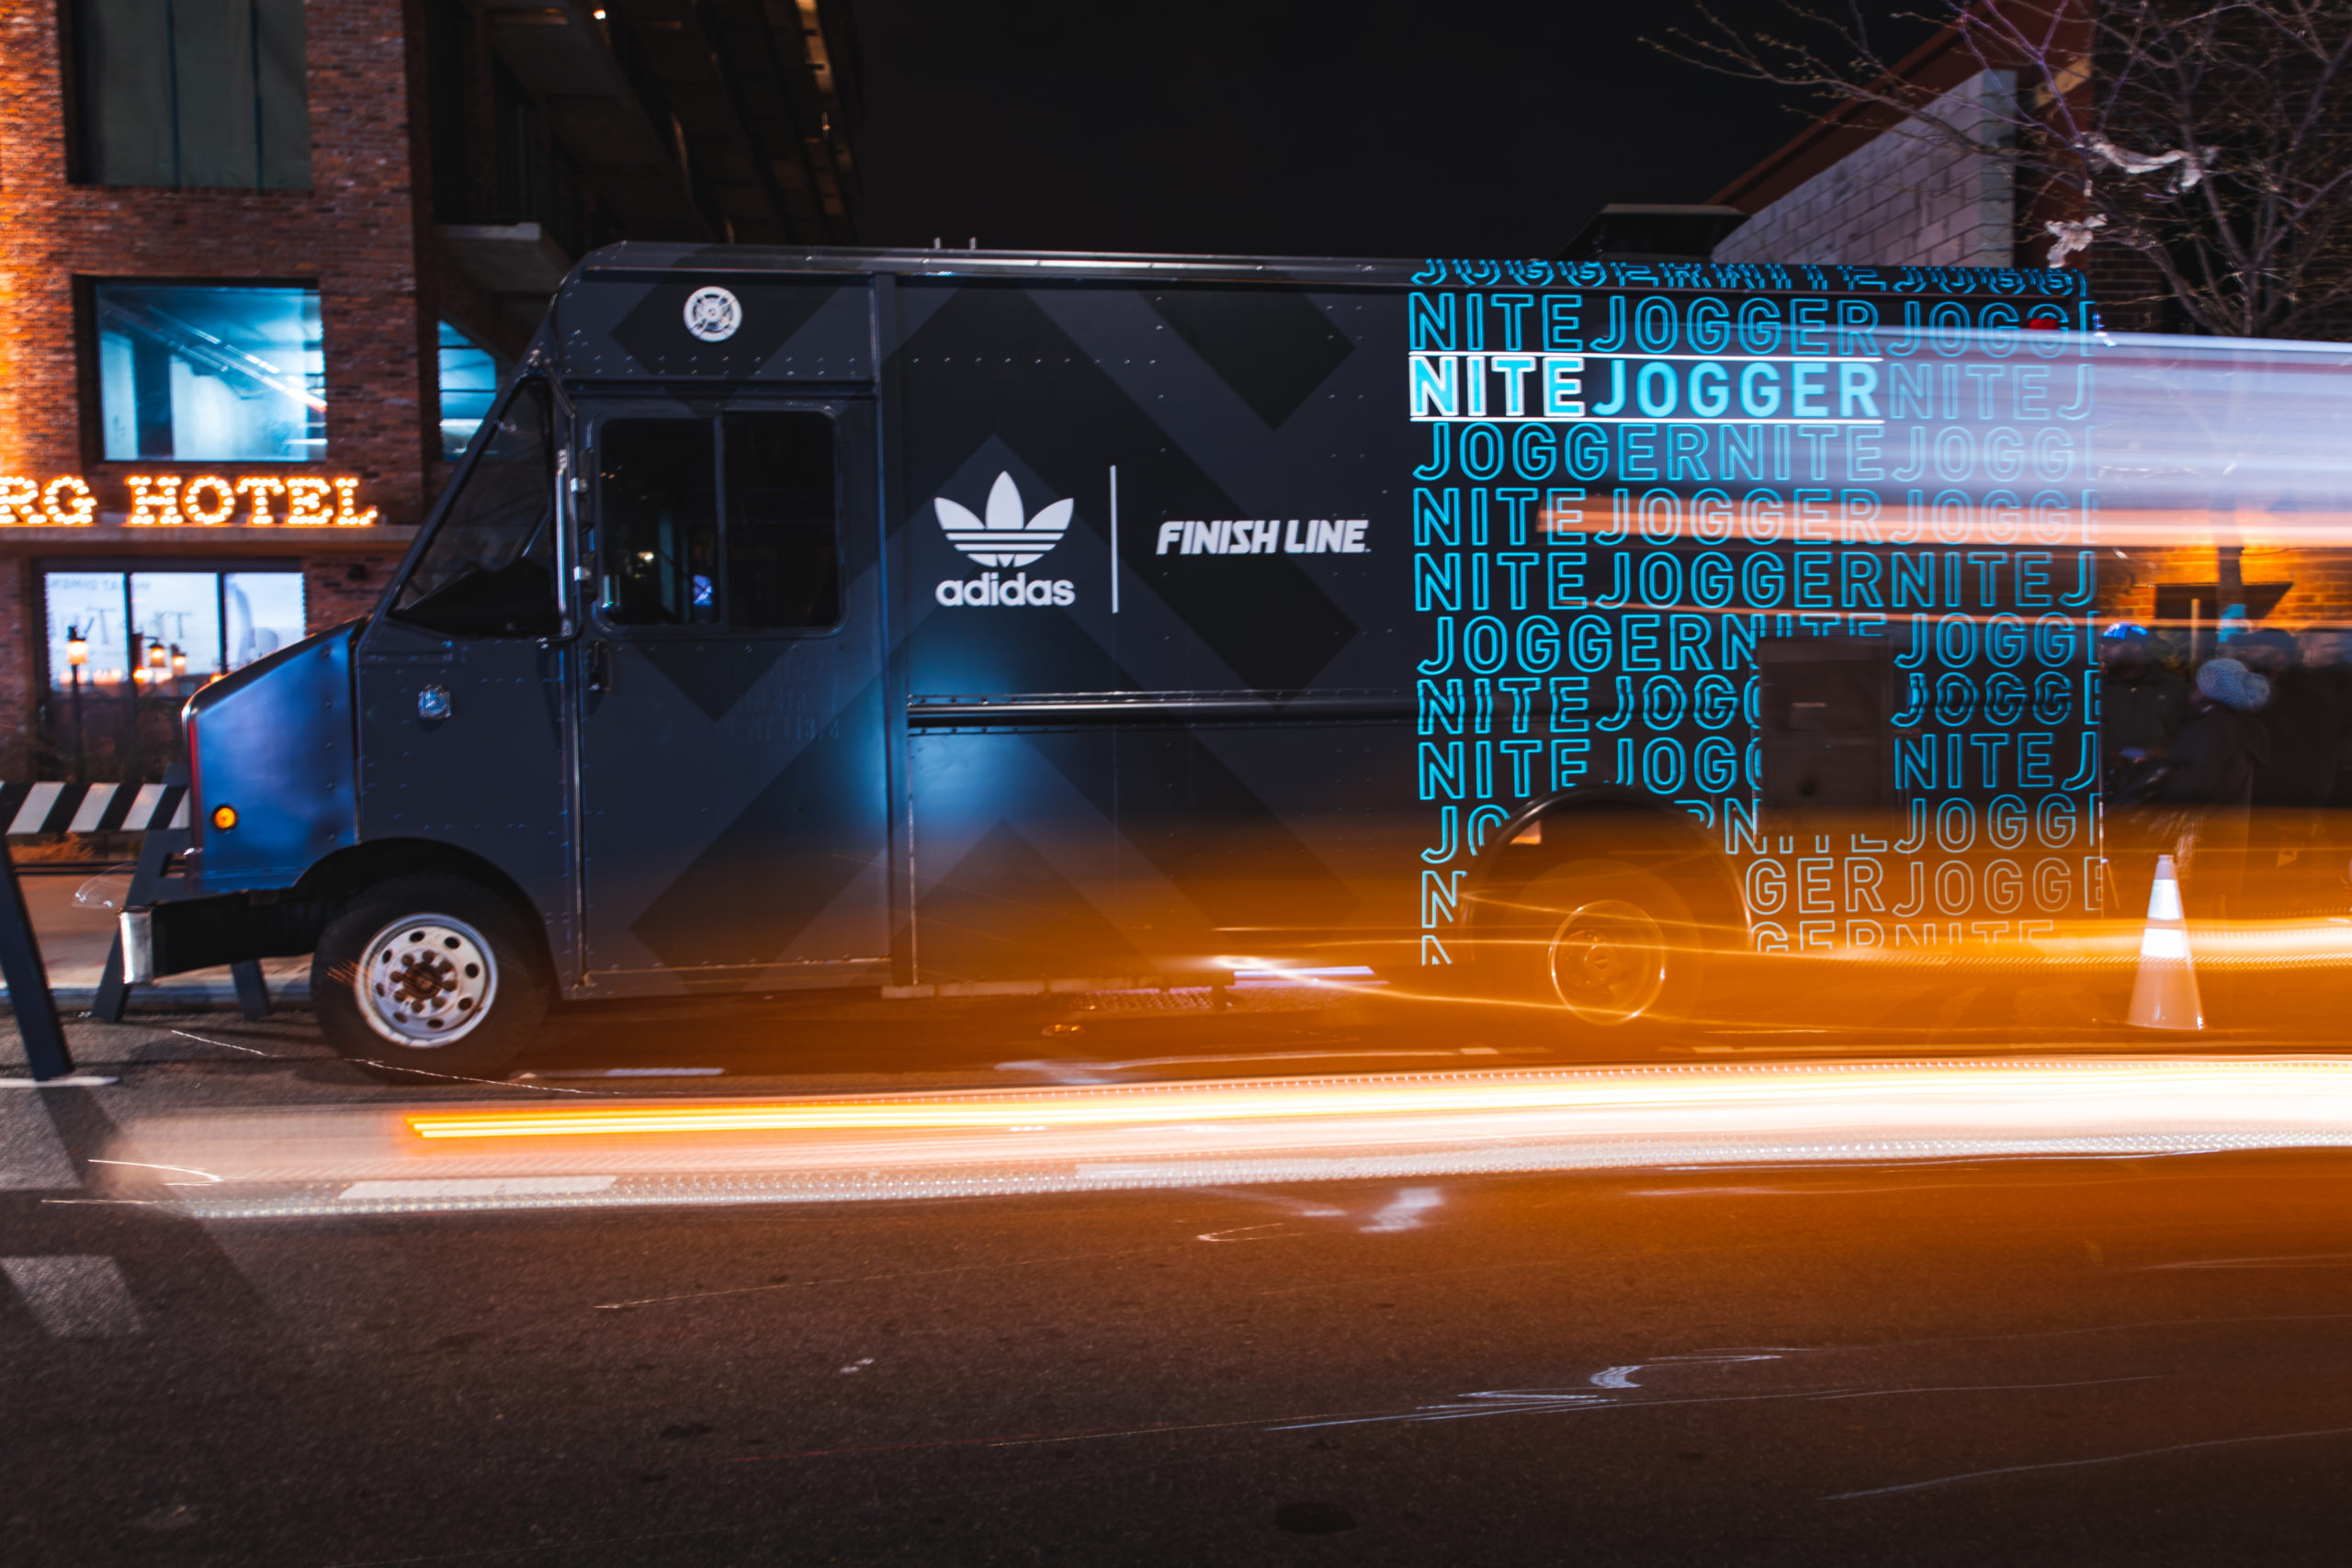 Adidas Nite Jogger Branded Food Truck